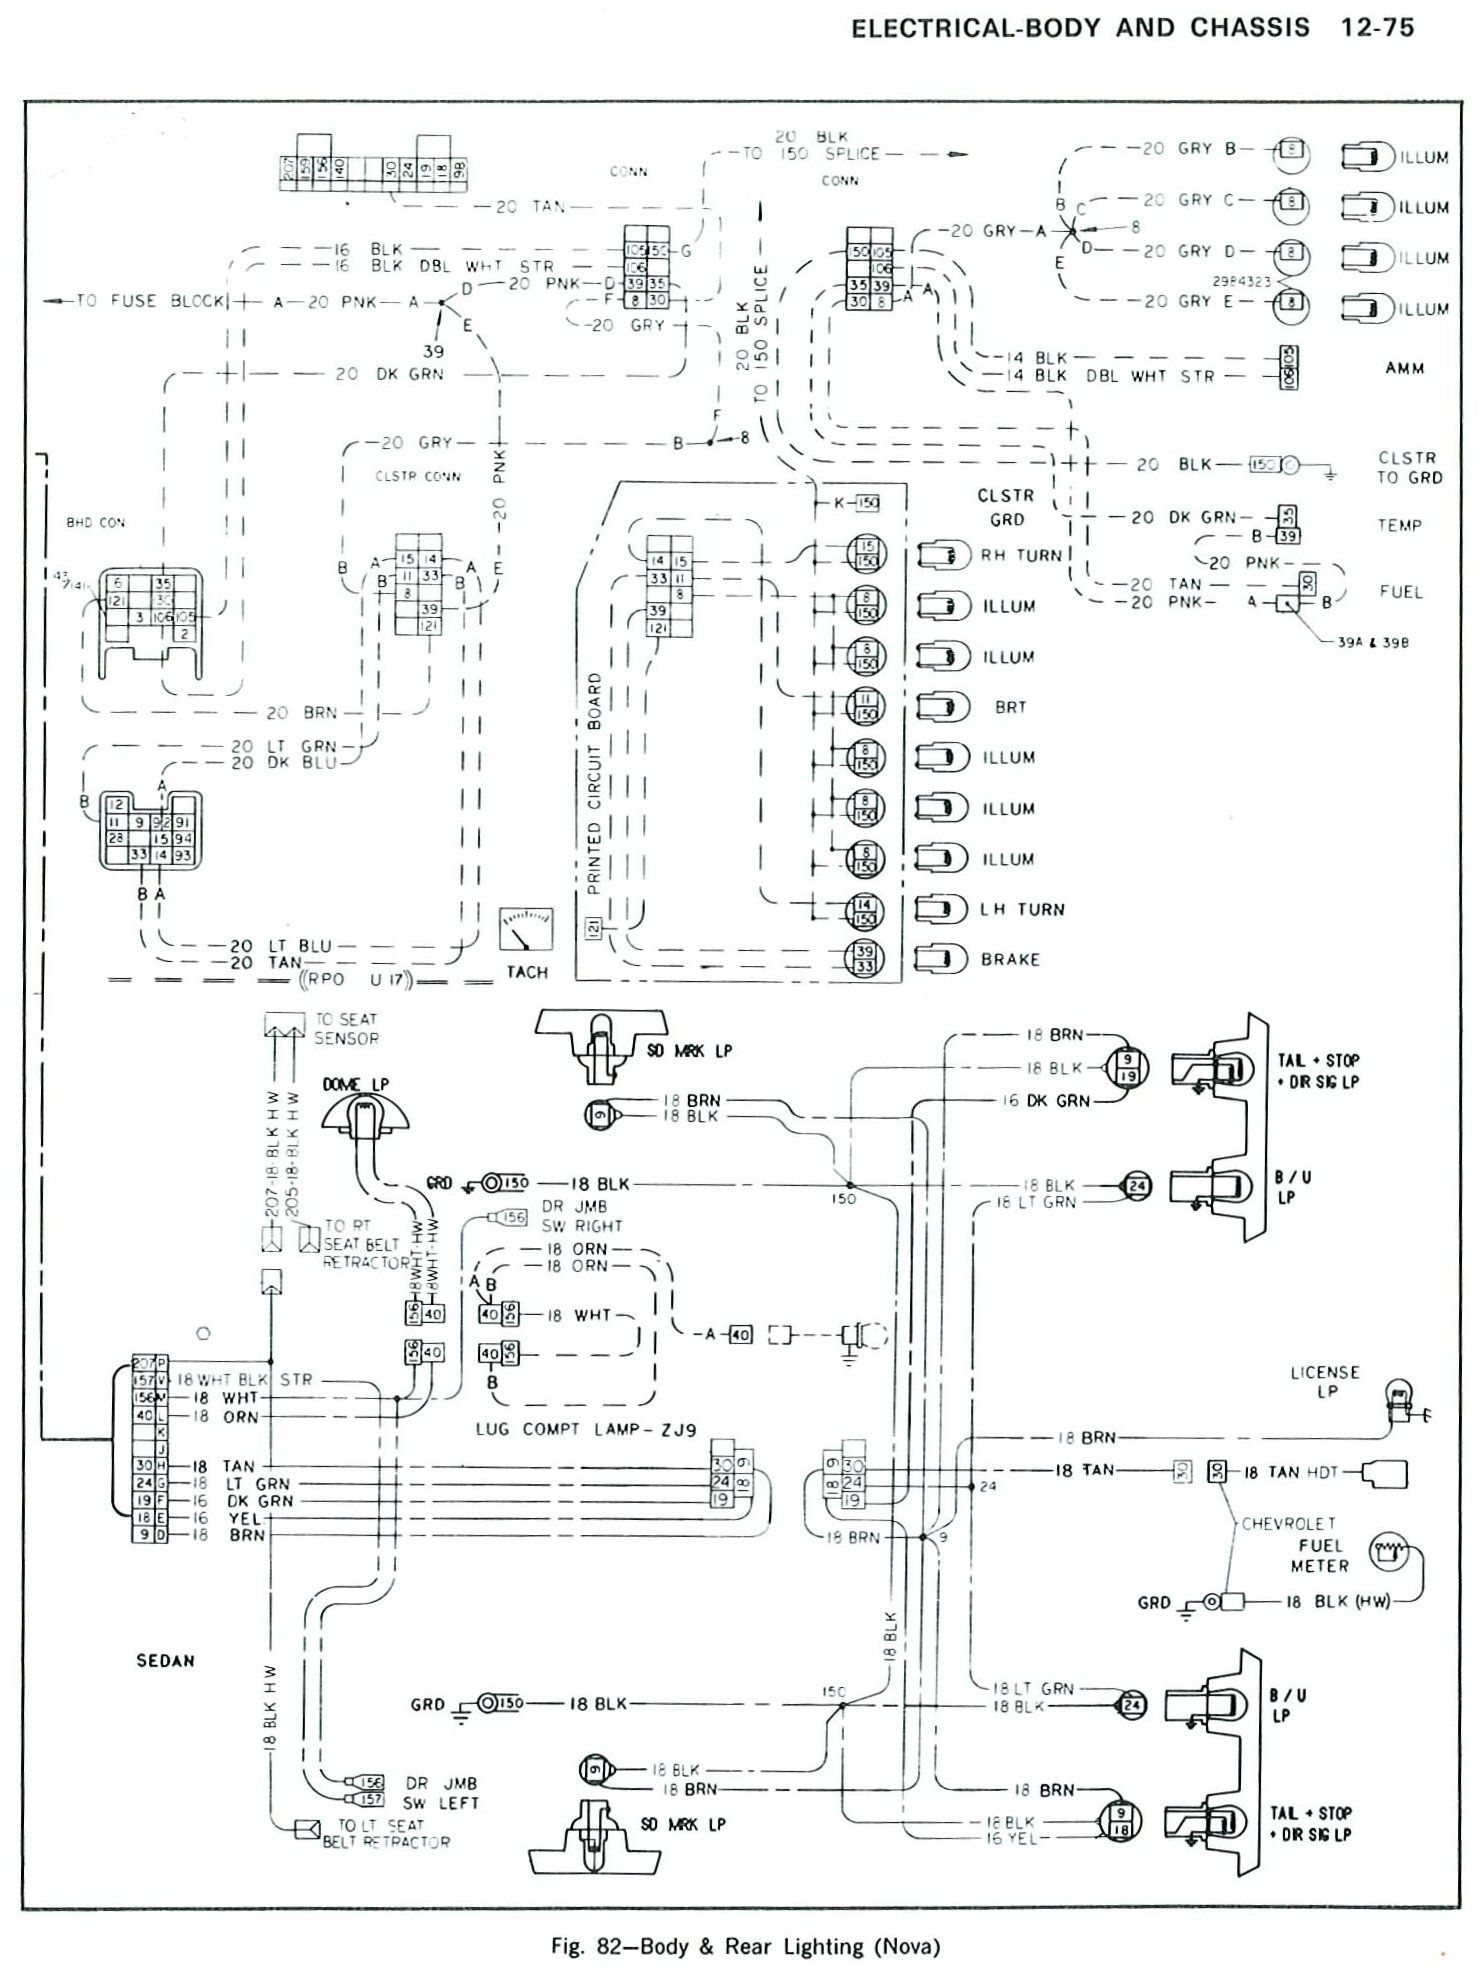 85 Chevy Truck Wiring Diagram |  looking at the wiring